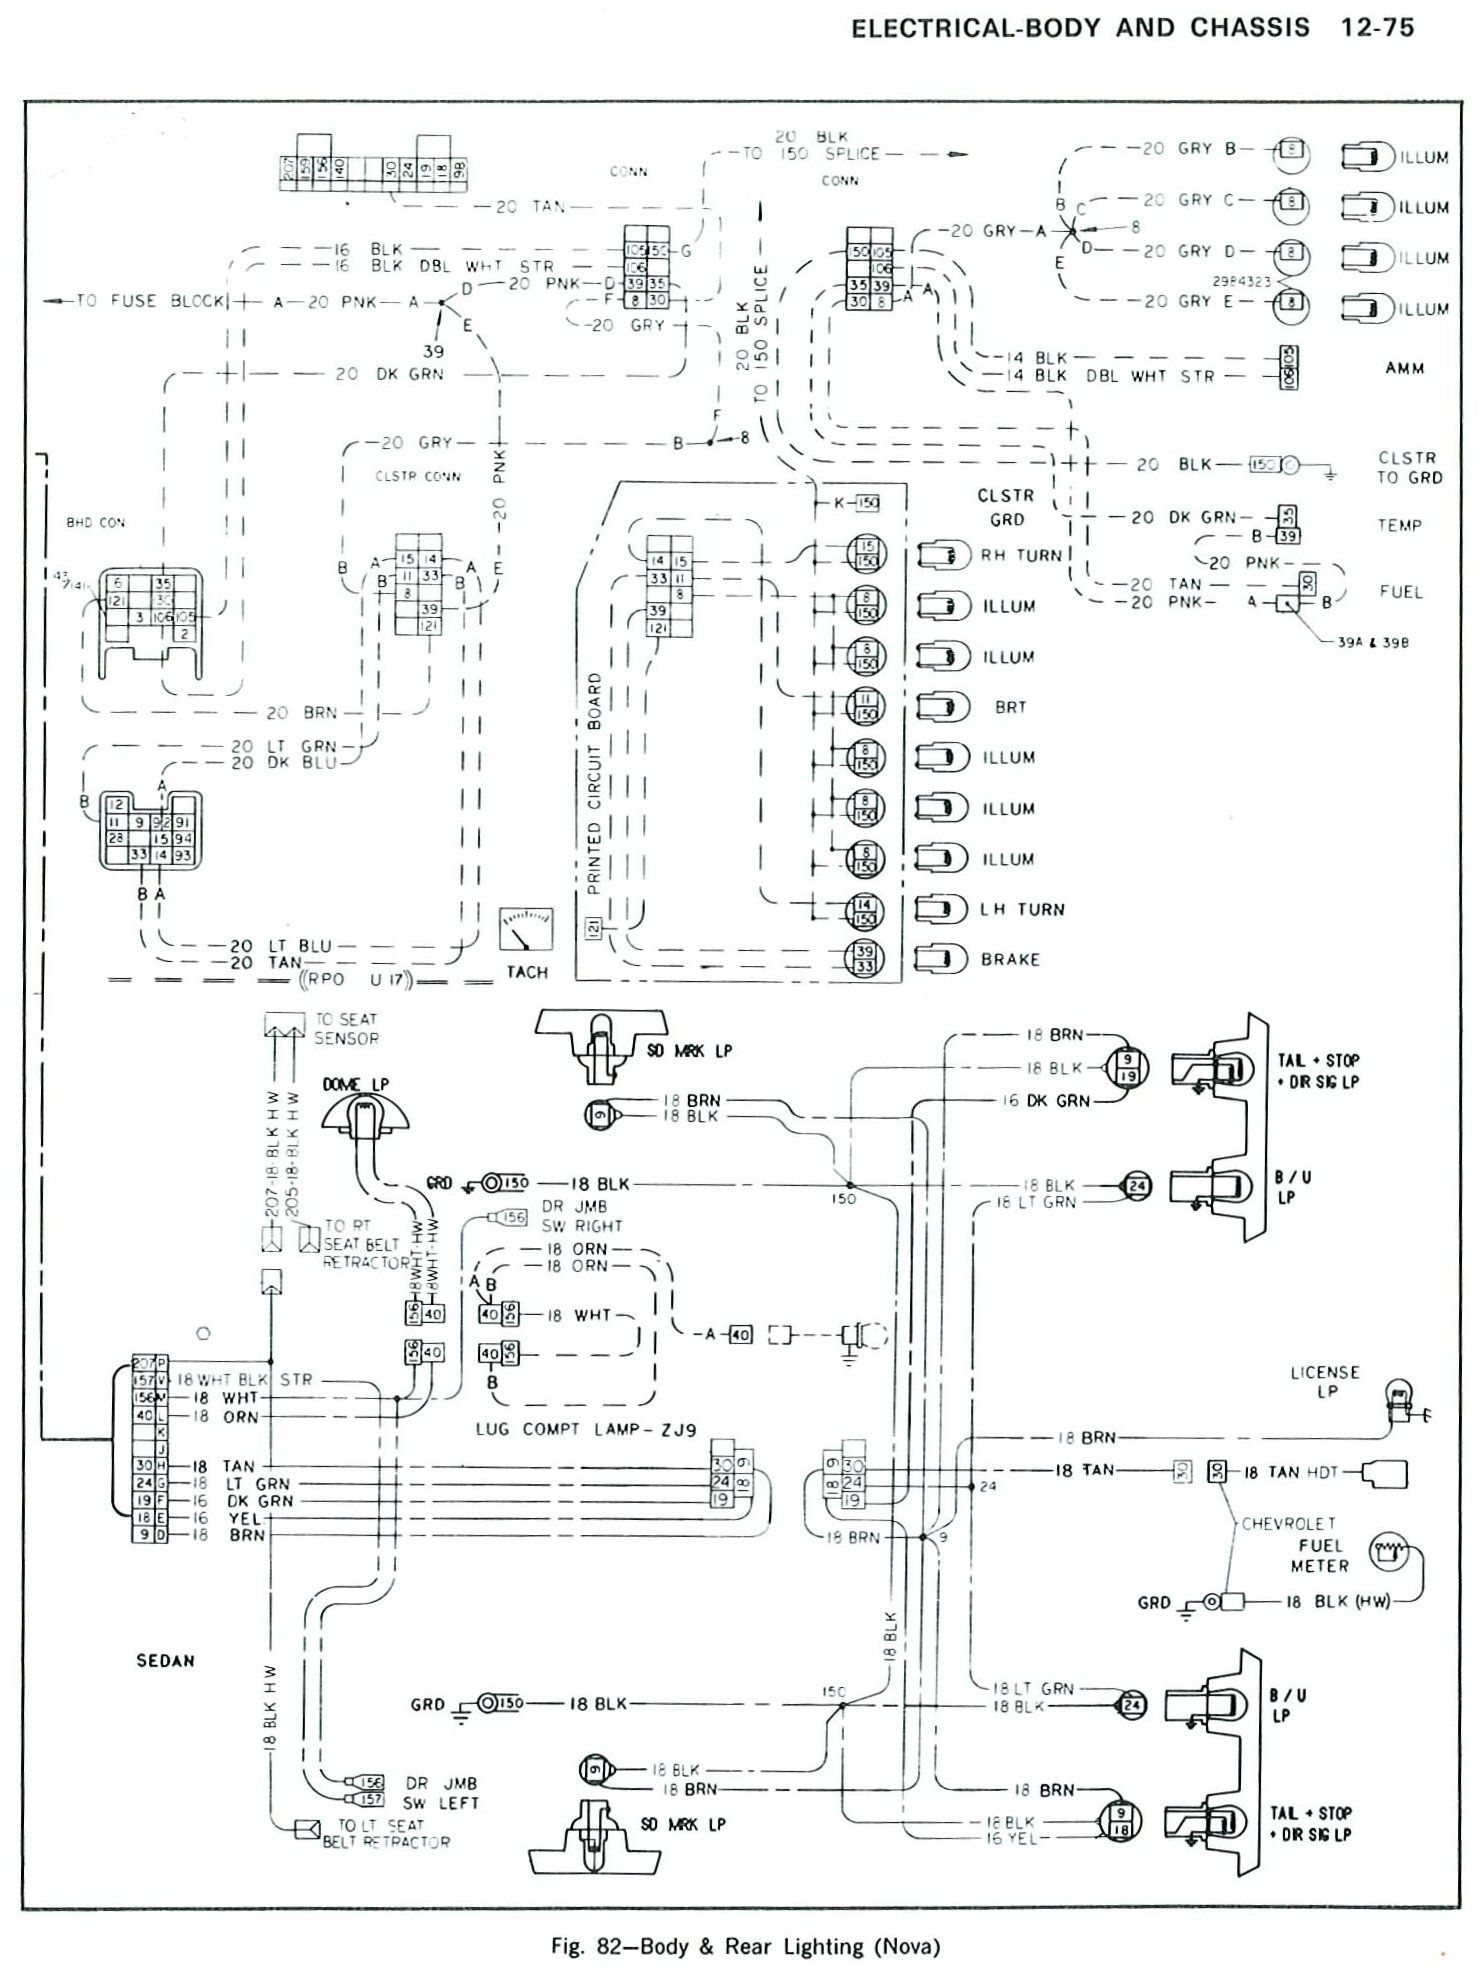 85 Chevy Truck Wiring Diagram |  looking at the wiring